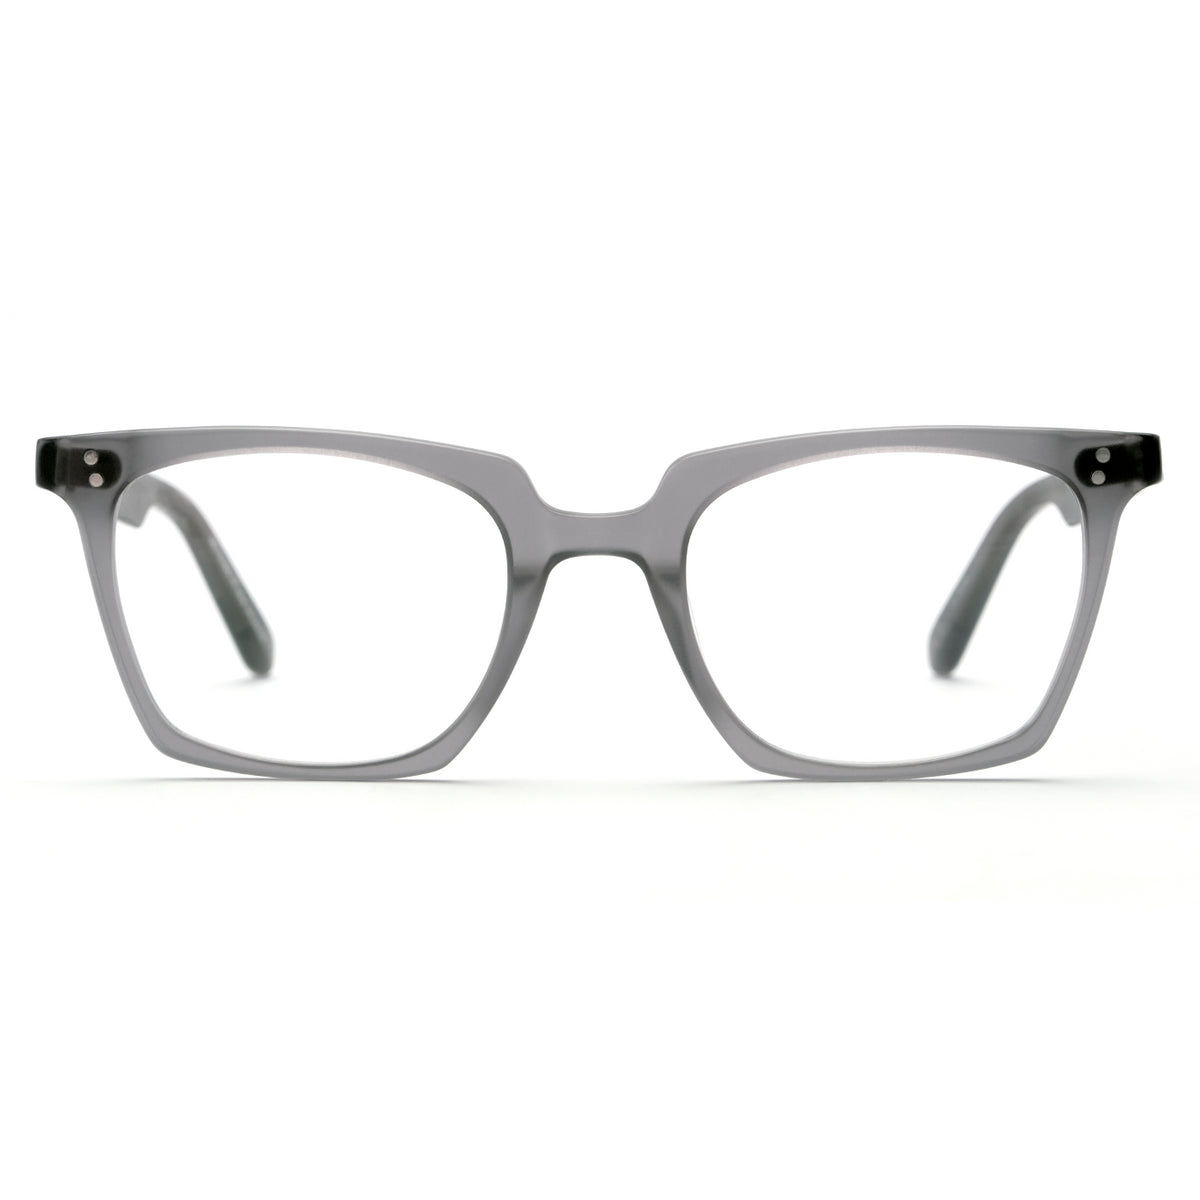 HOWARD | Matte Ash handcrafted acetate eyewear